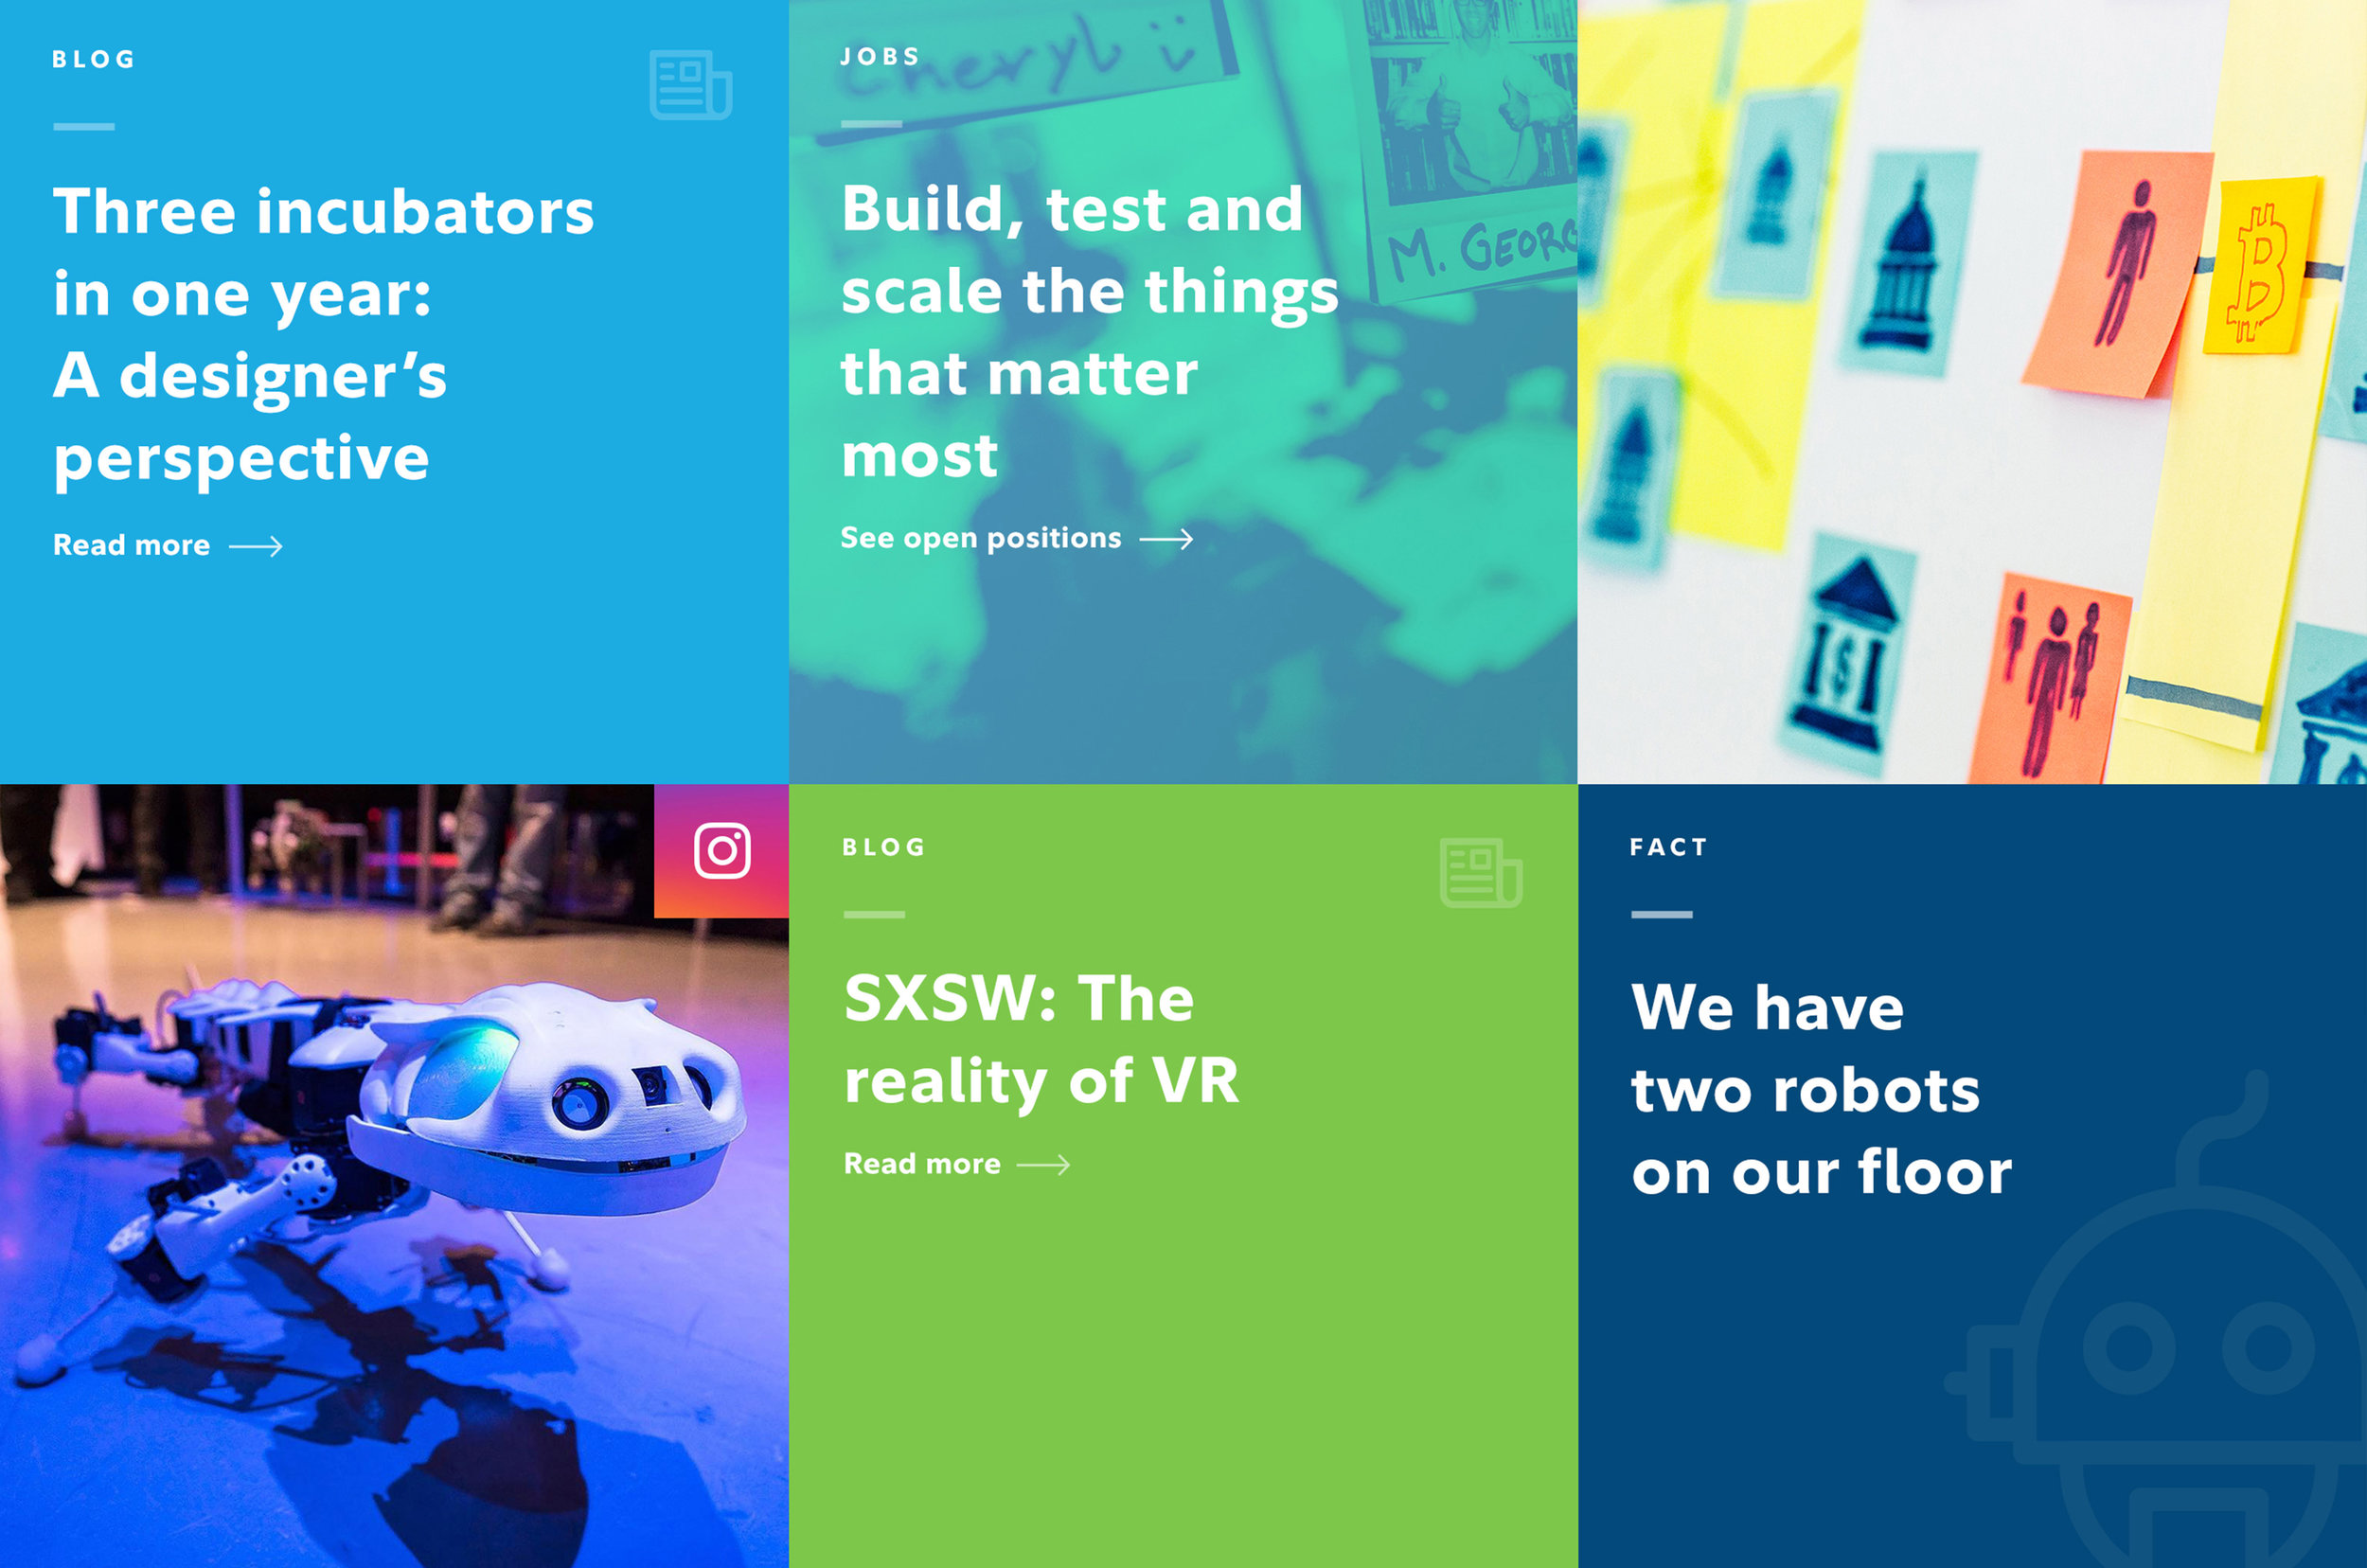 A modular grid added visual interest, brand personality and provided a way to bubble up interesting content elsewhere on the site.